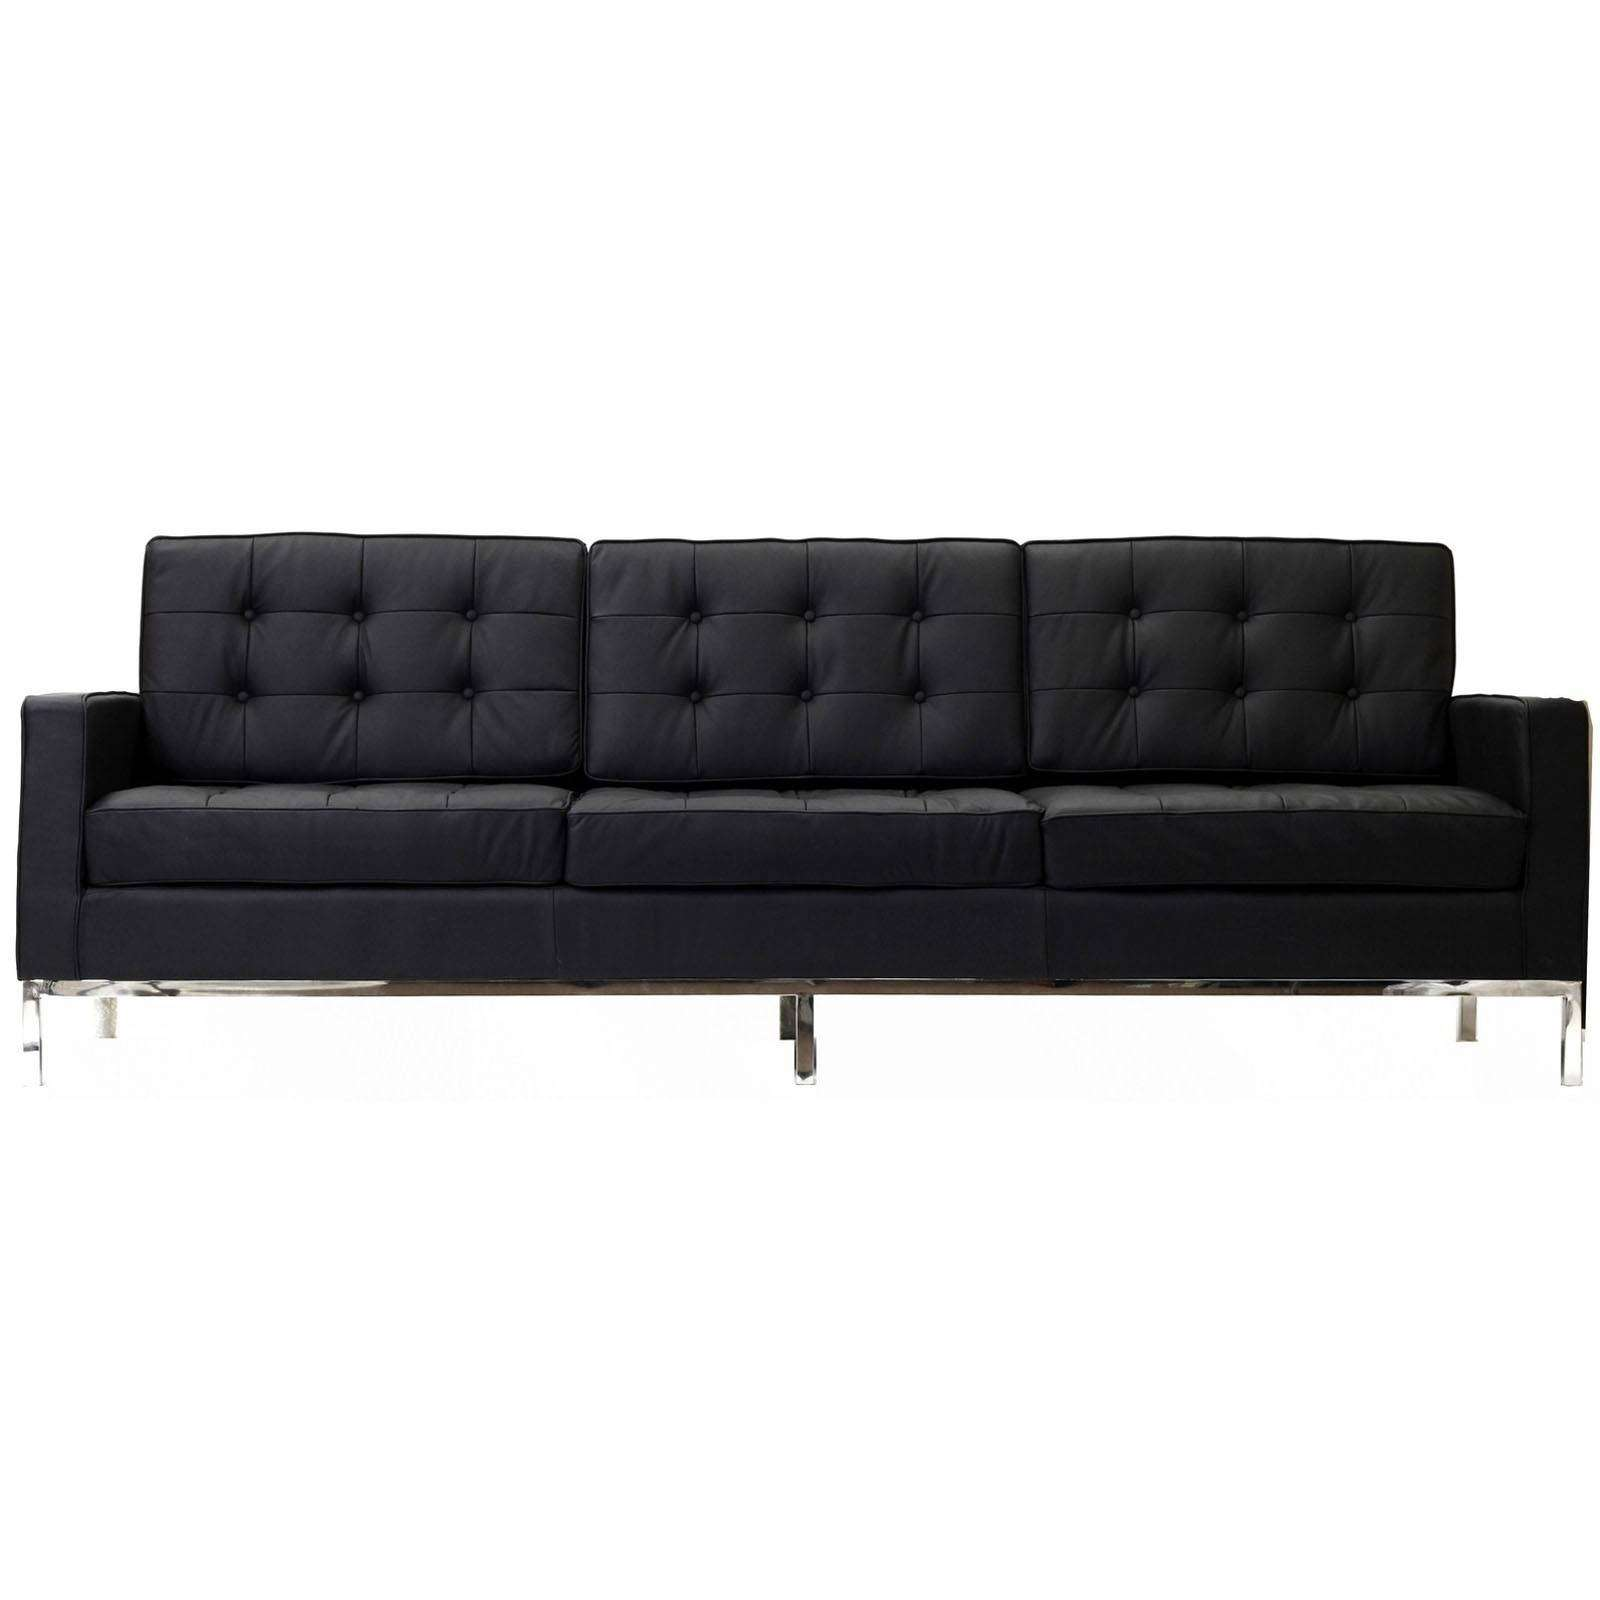 Florence knoll style sofa couch leather for Contemporary leather furniture